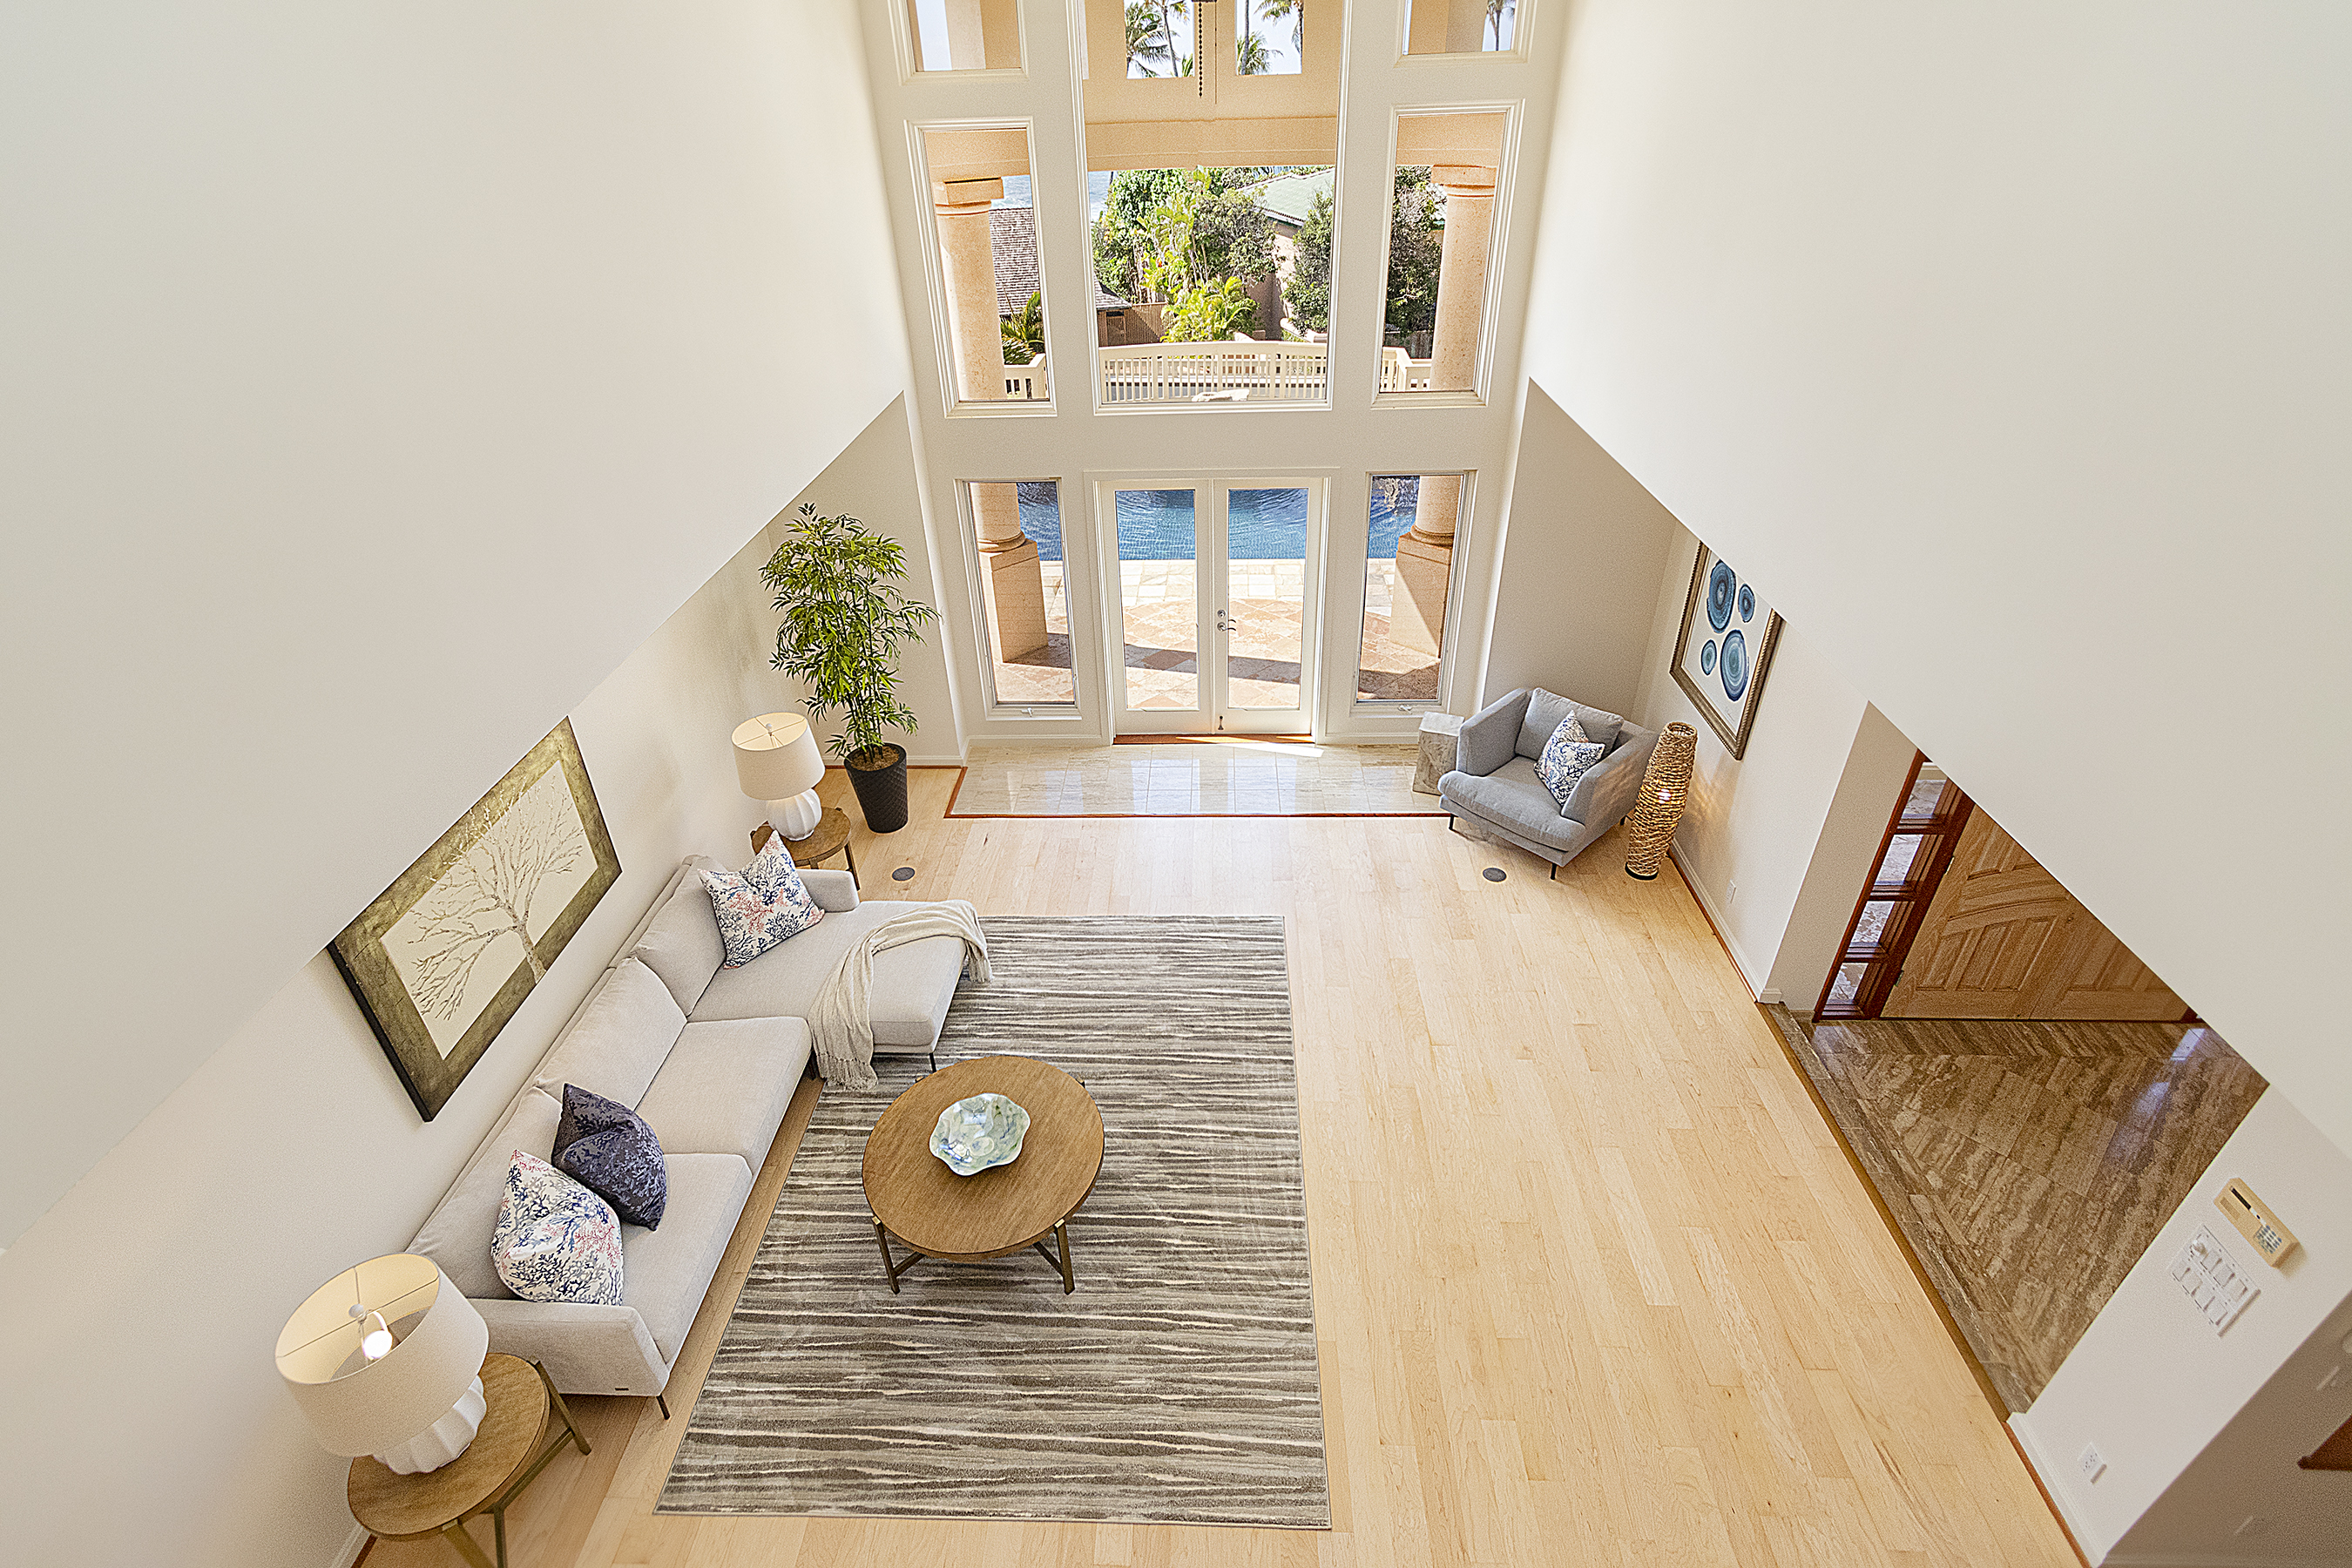 Living Room view from the second floor at 4323 Kaikoo Place, Honolulu, HI 96816